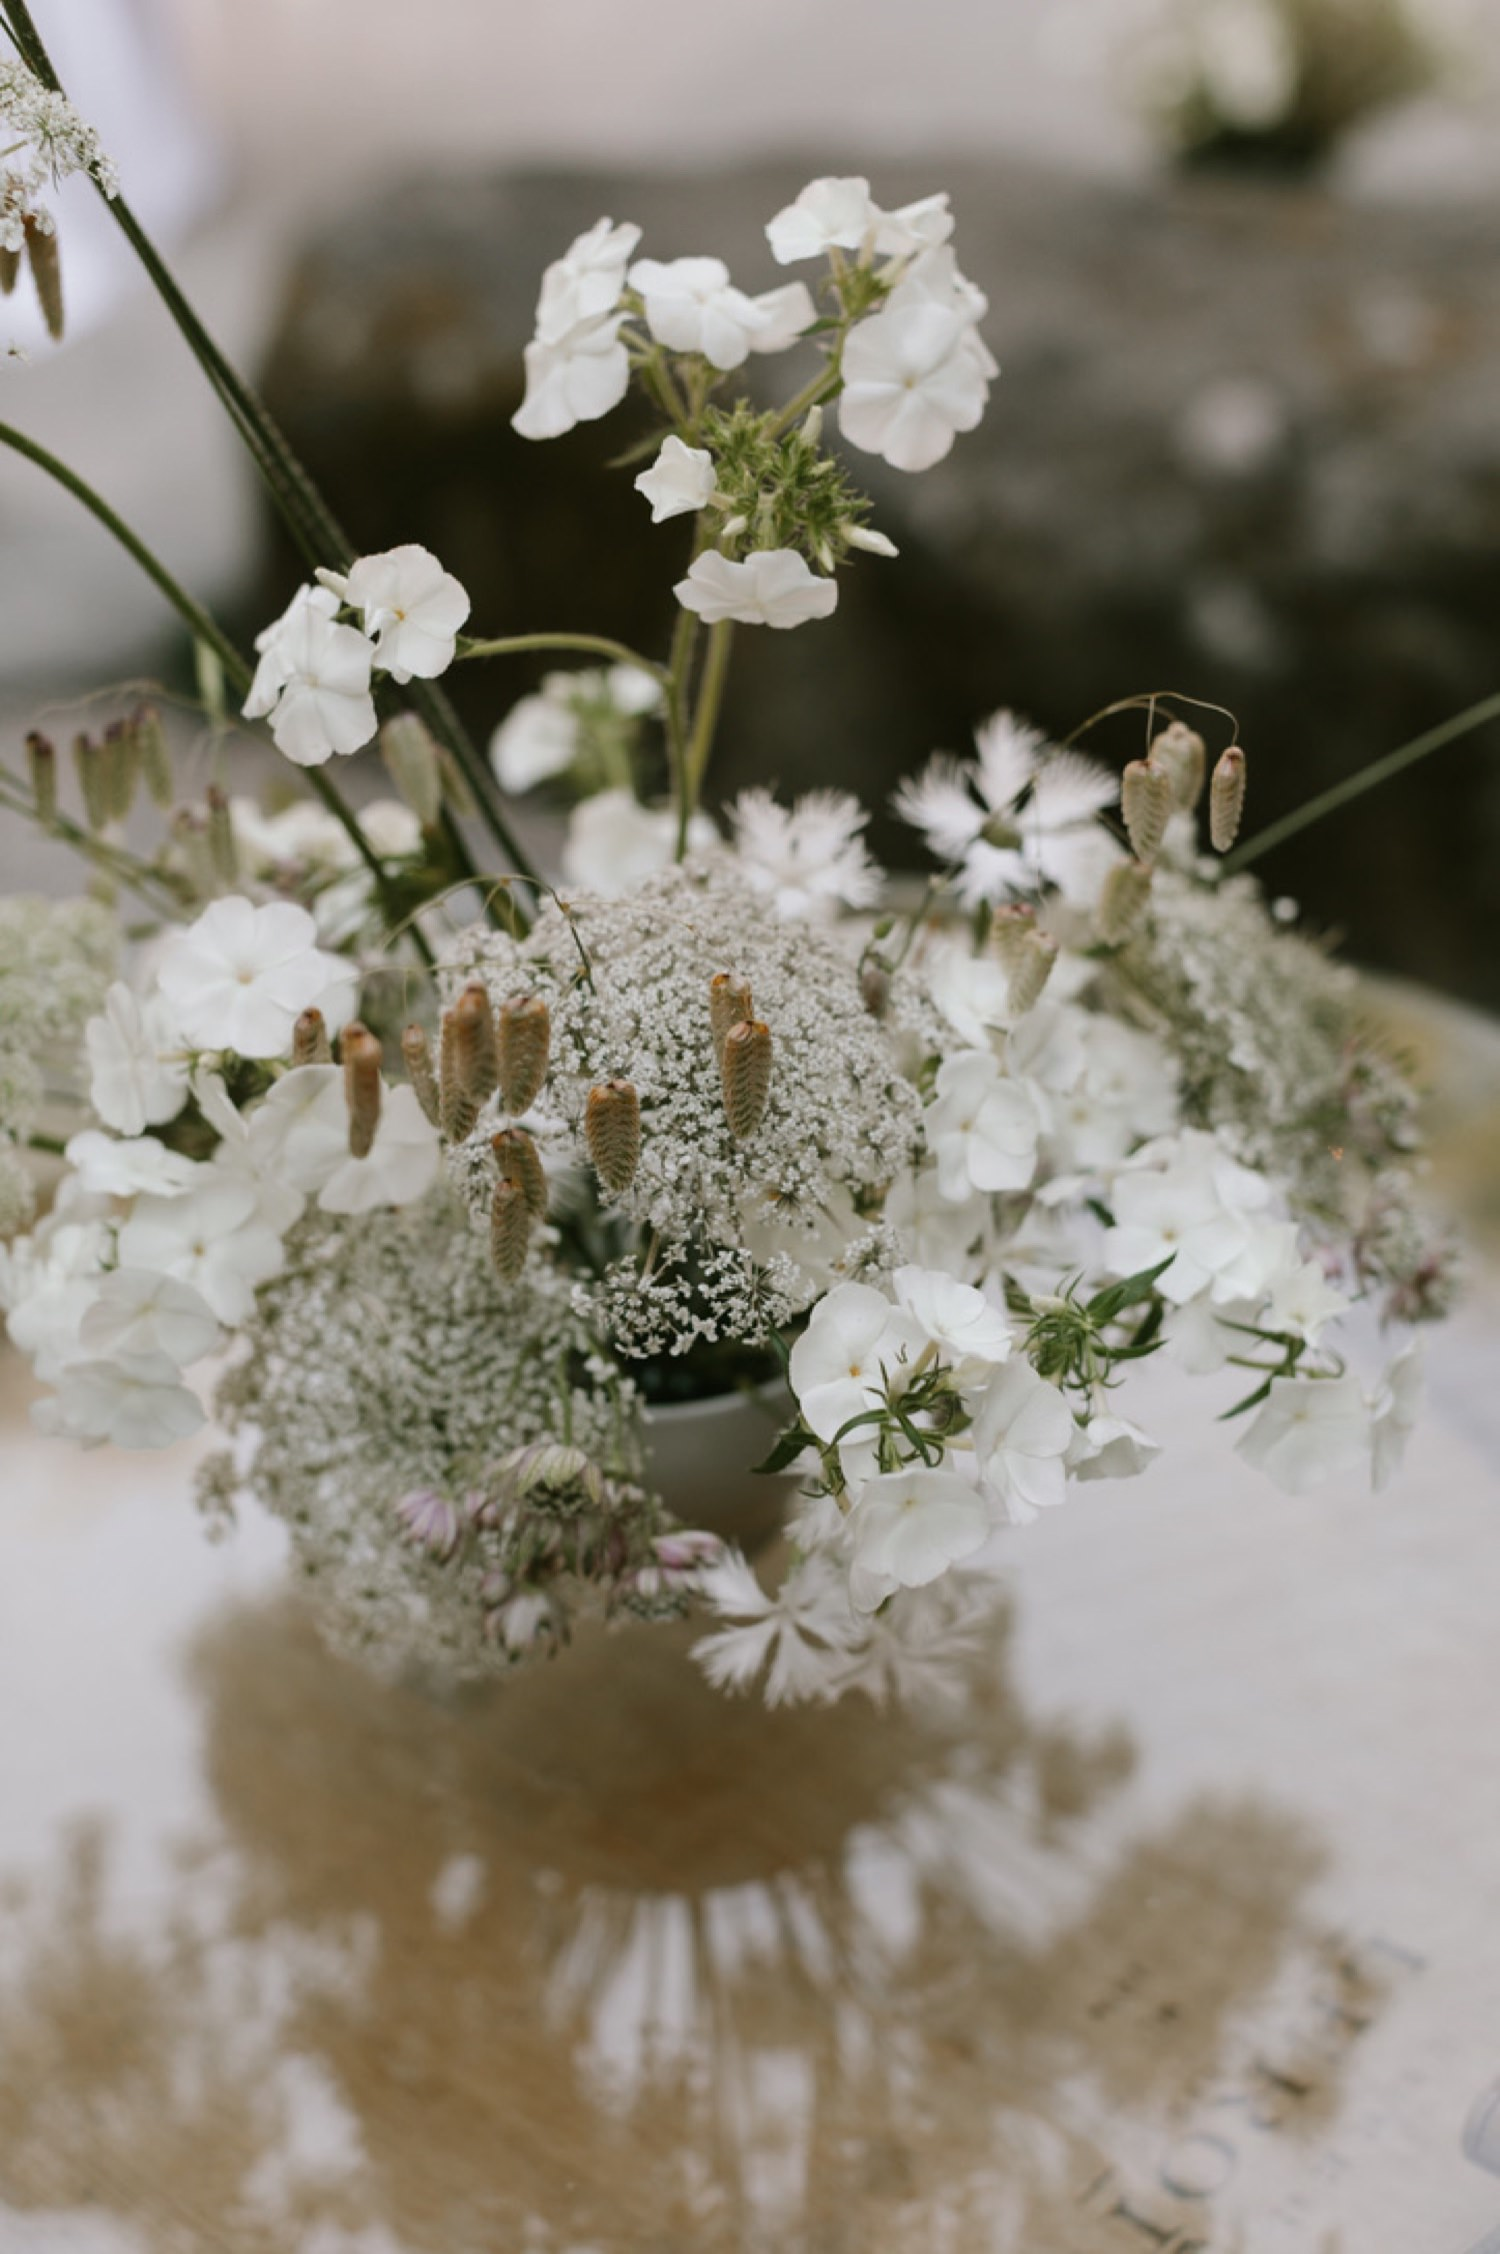 Delicate and minimal all white wedding florals from Botanique Flowers Seattle